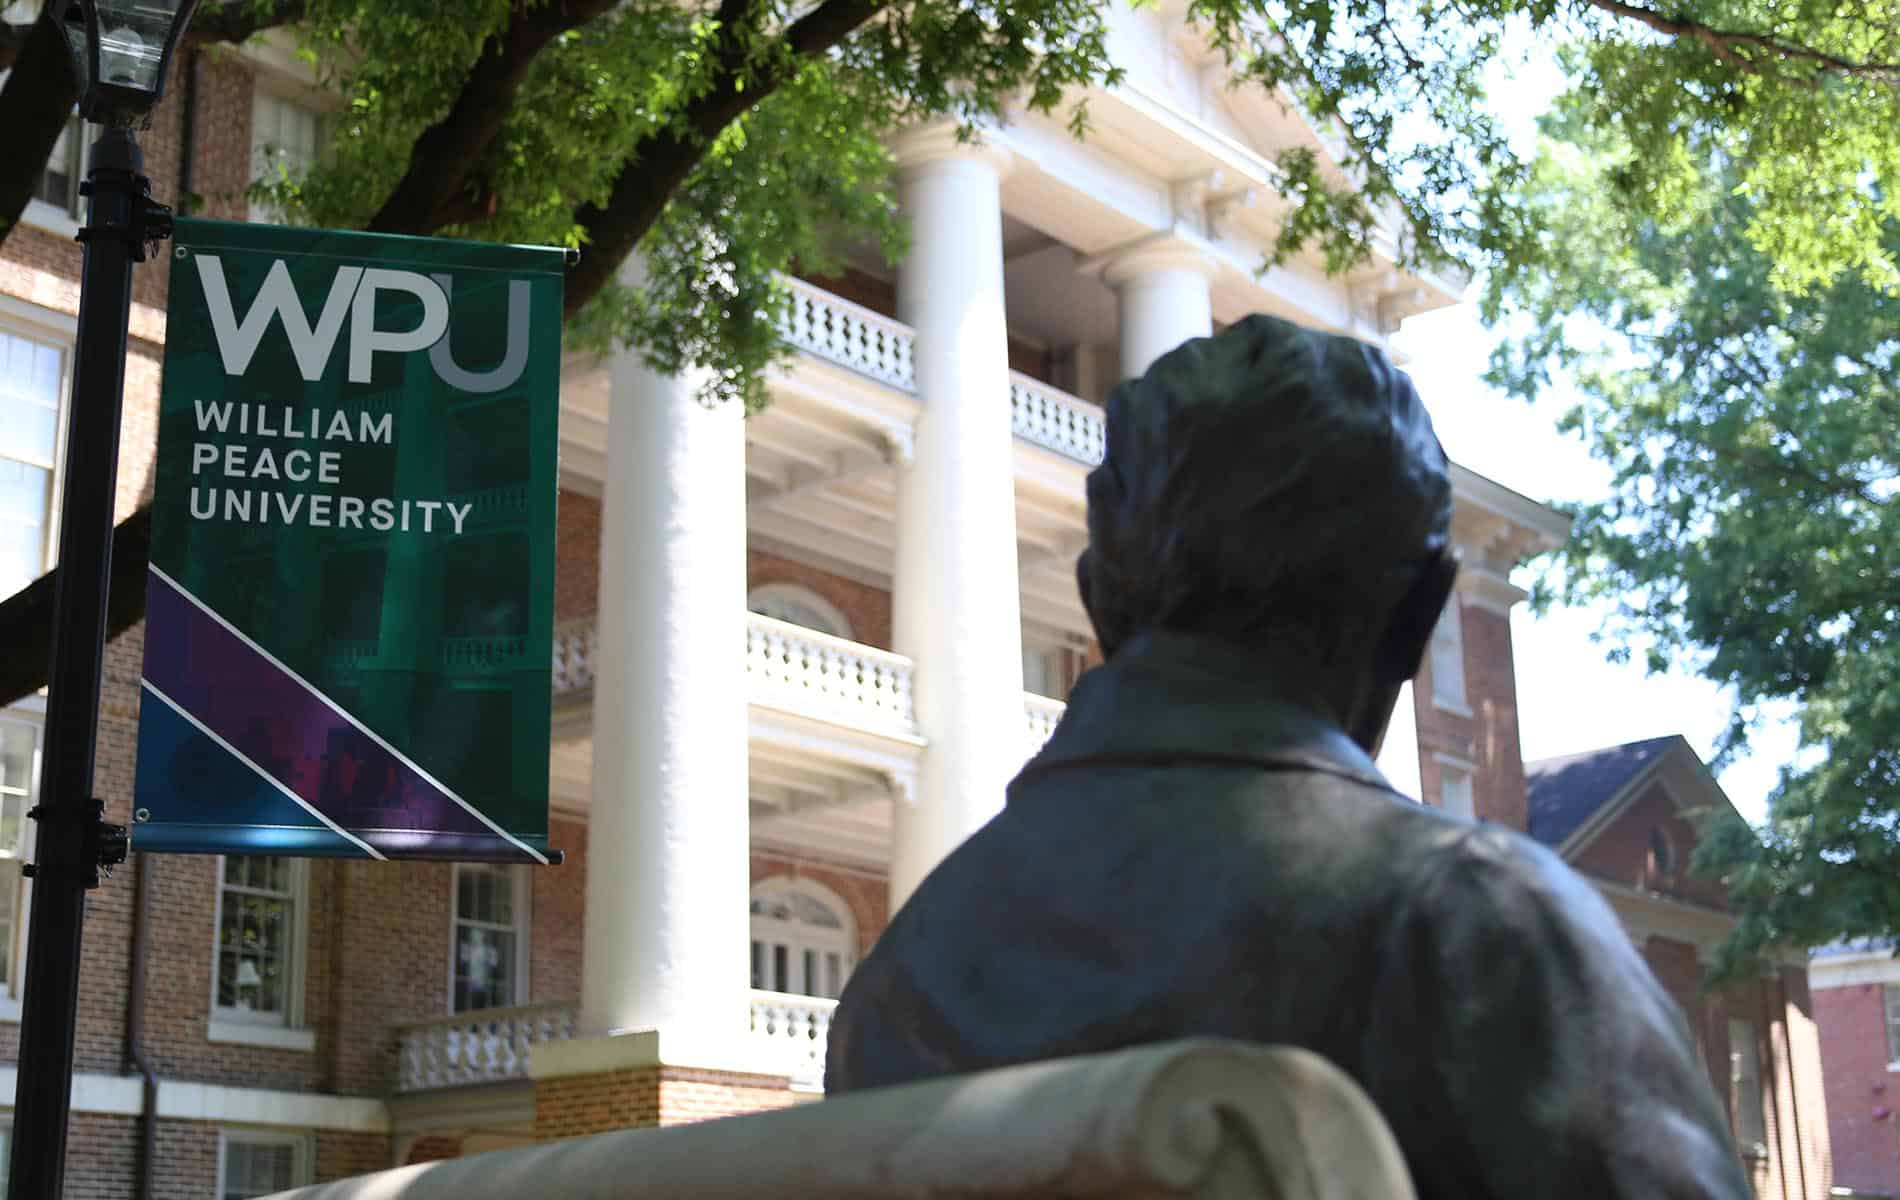 Mr. Peace and Main Building with a WPU banner.